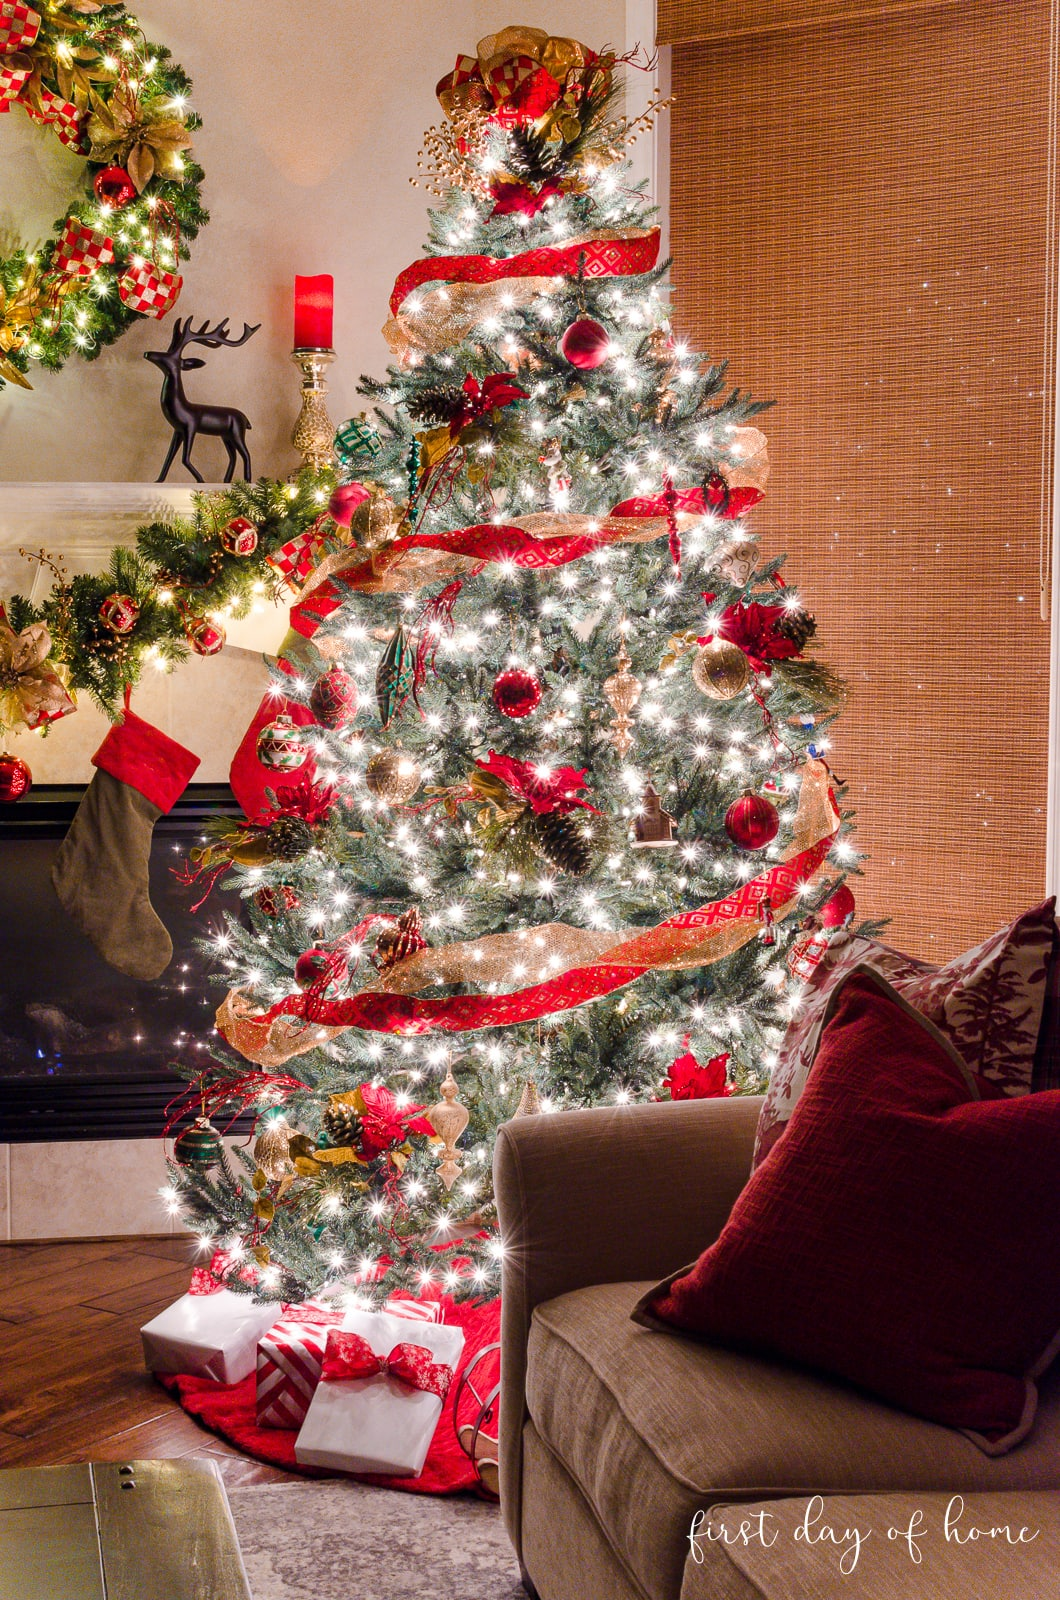 Elegant Christmas tree next to sofa in living room with Christmas garland on mantel in background